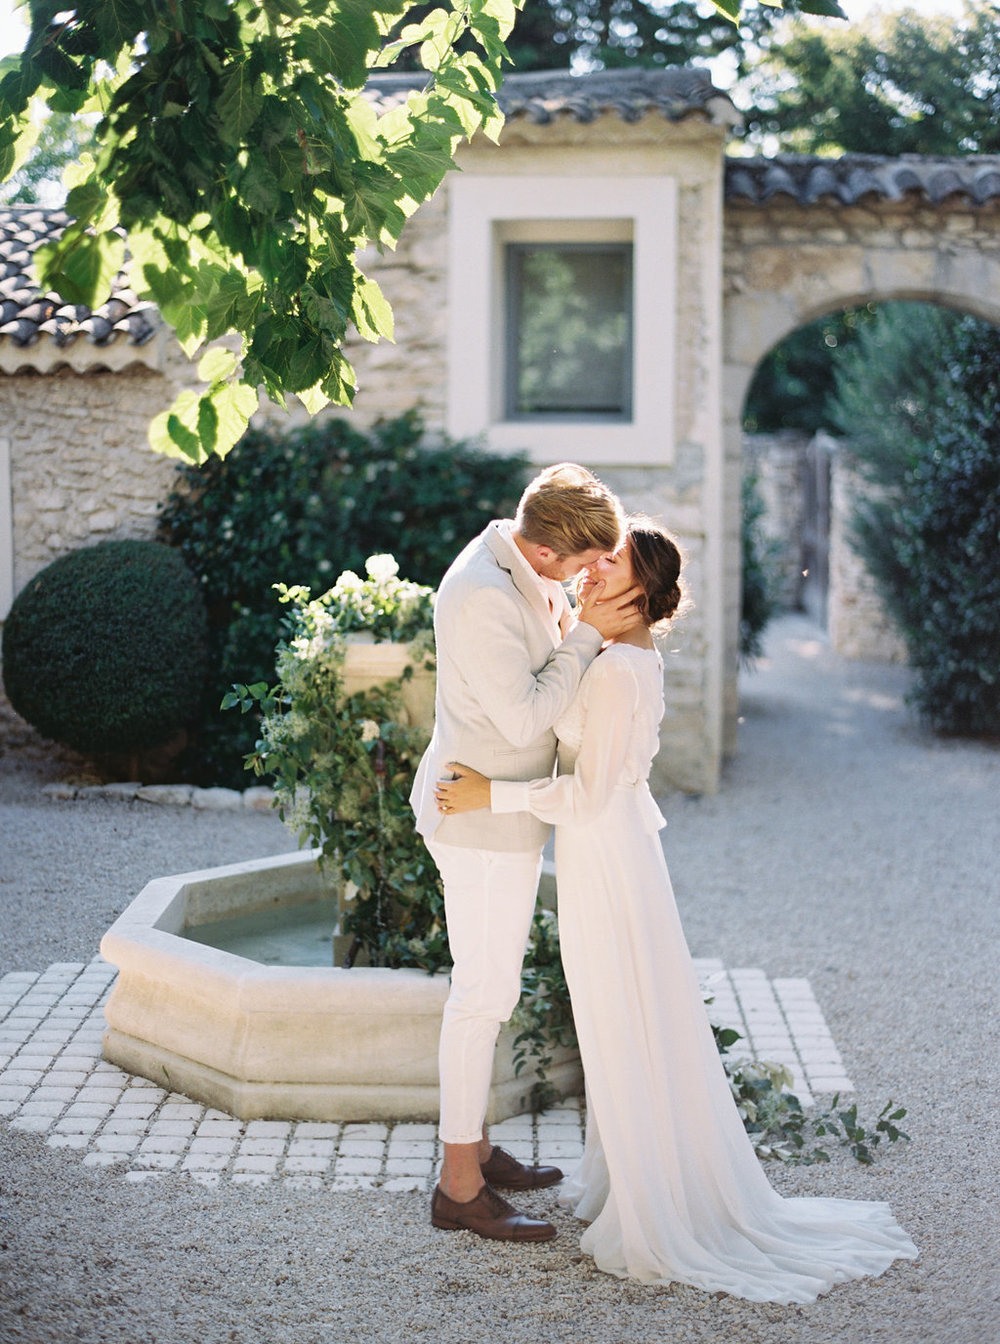 ProvenceFranceWeddingKatieGrantPhoto(118of249).jpg